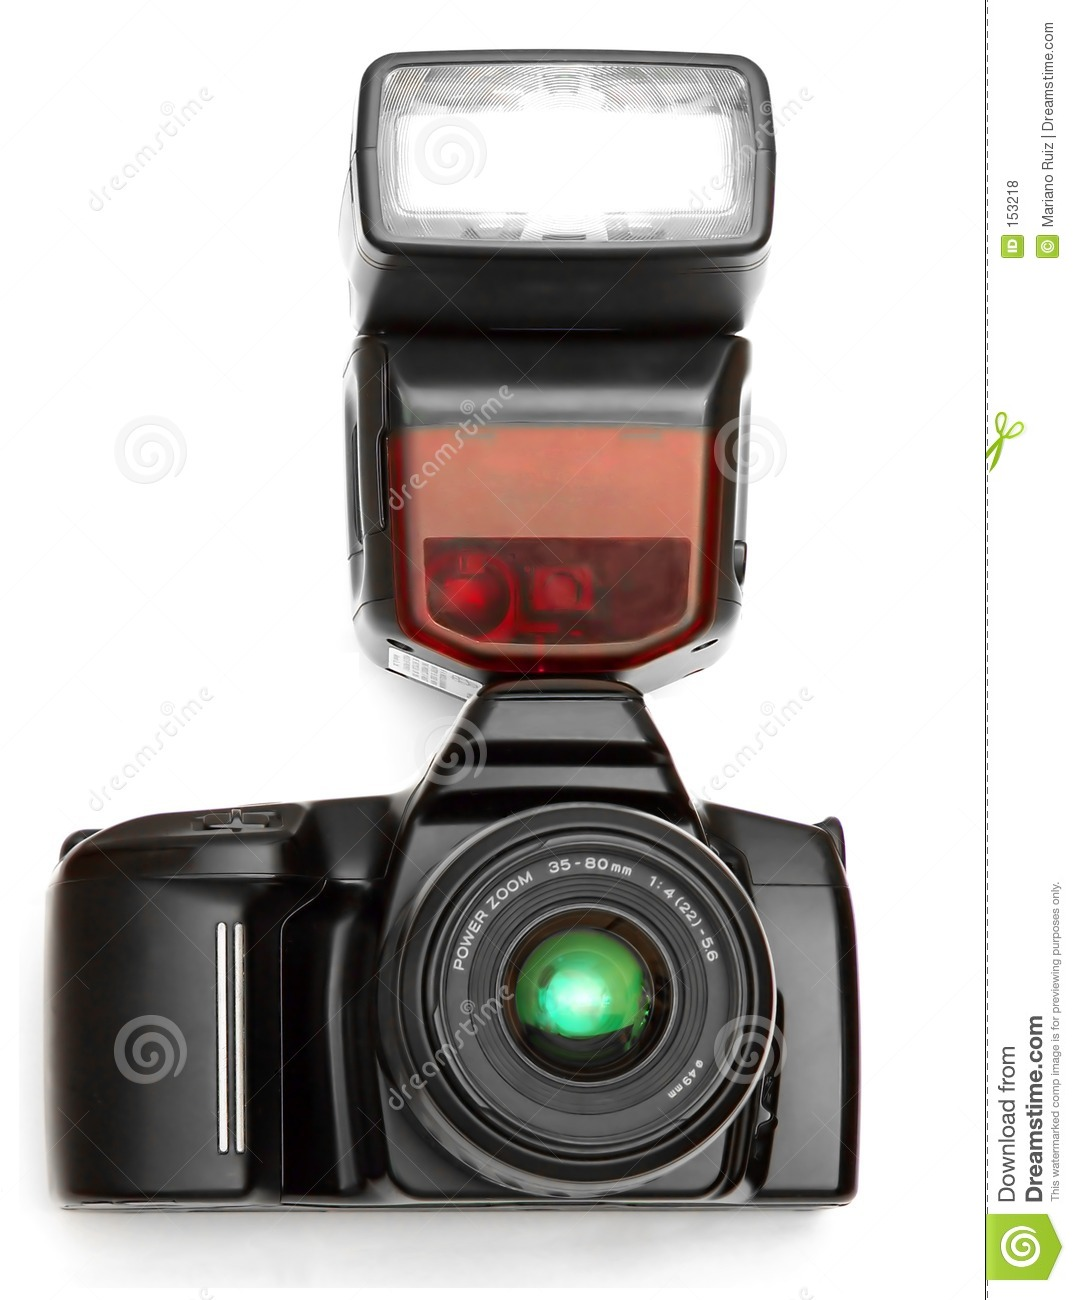 A camera with flash